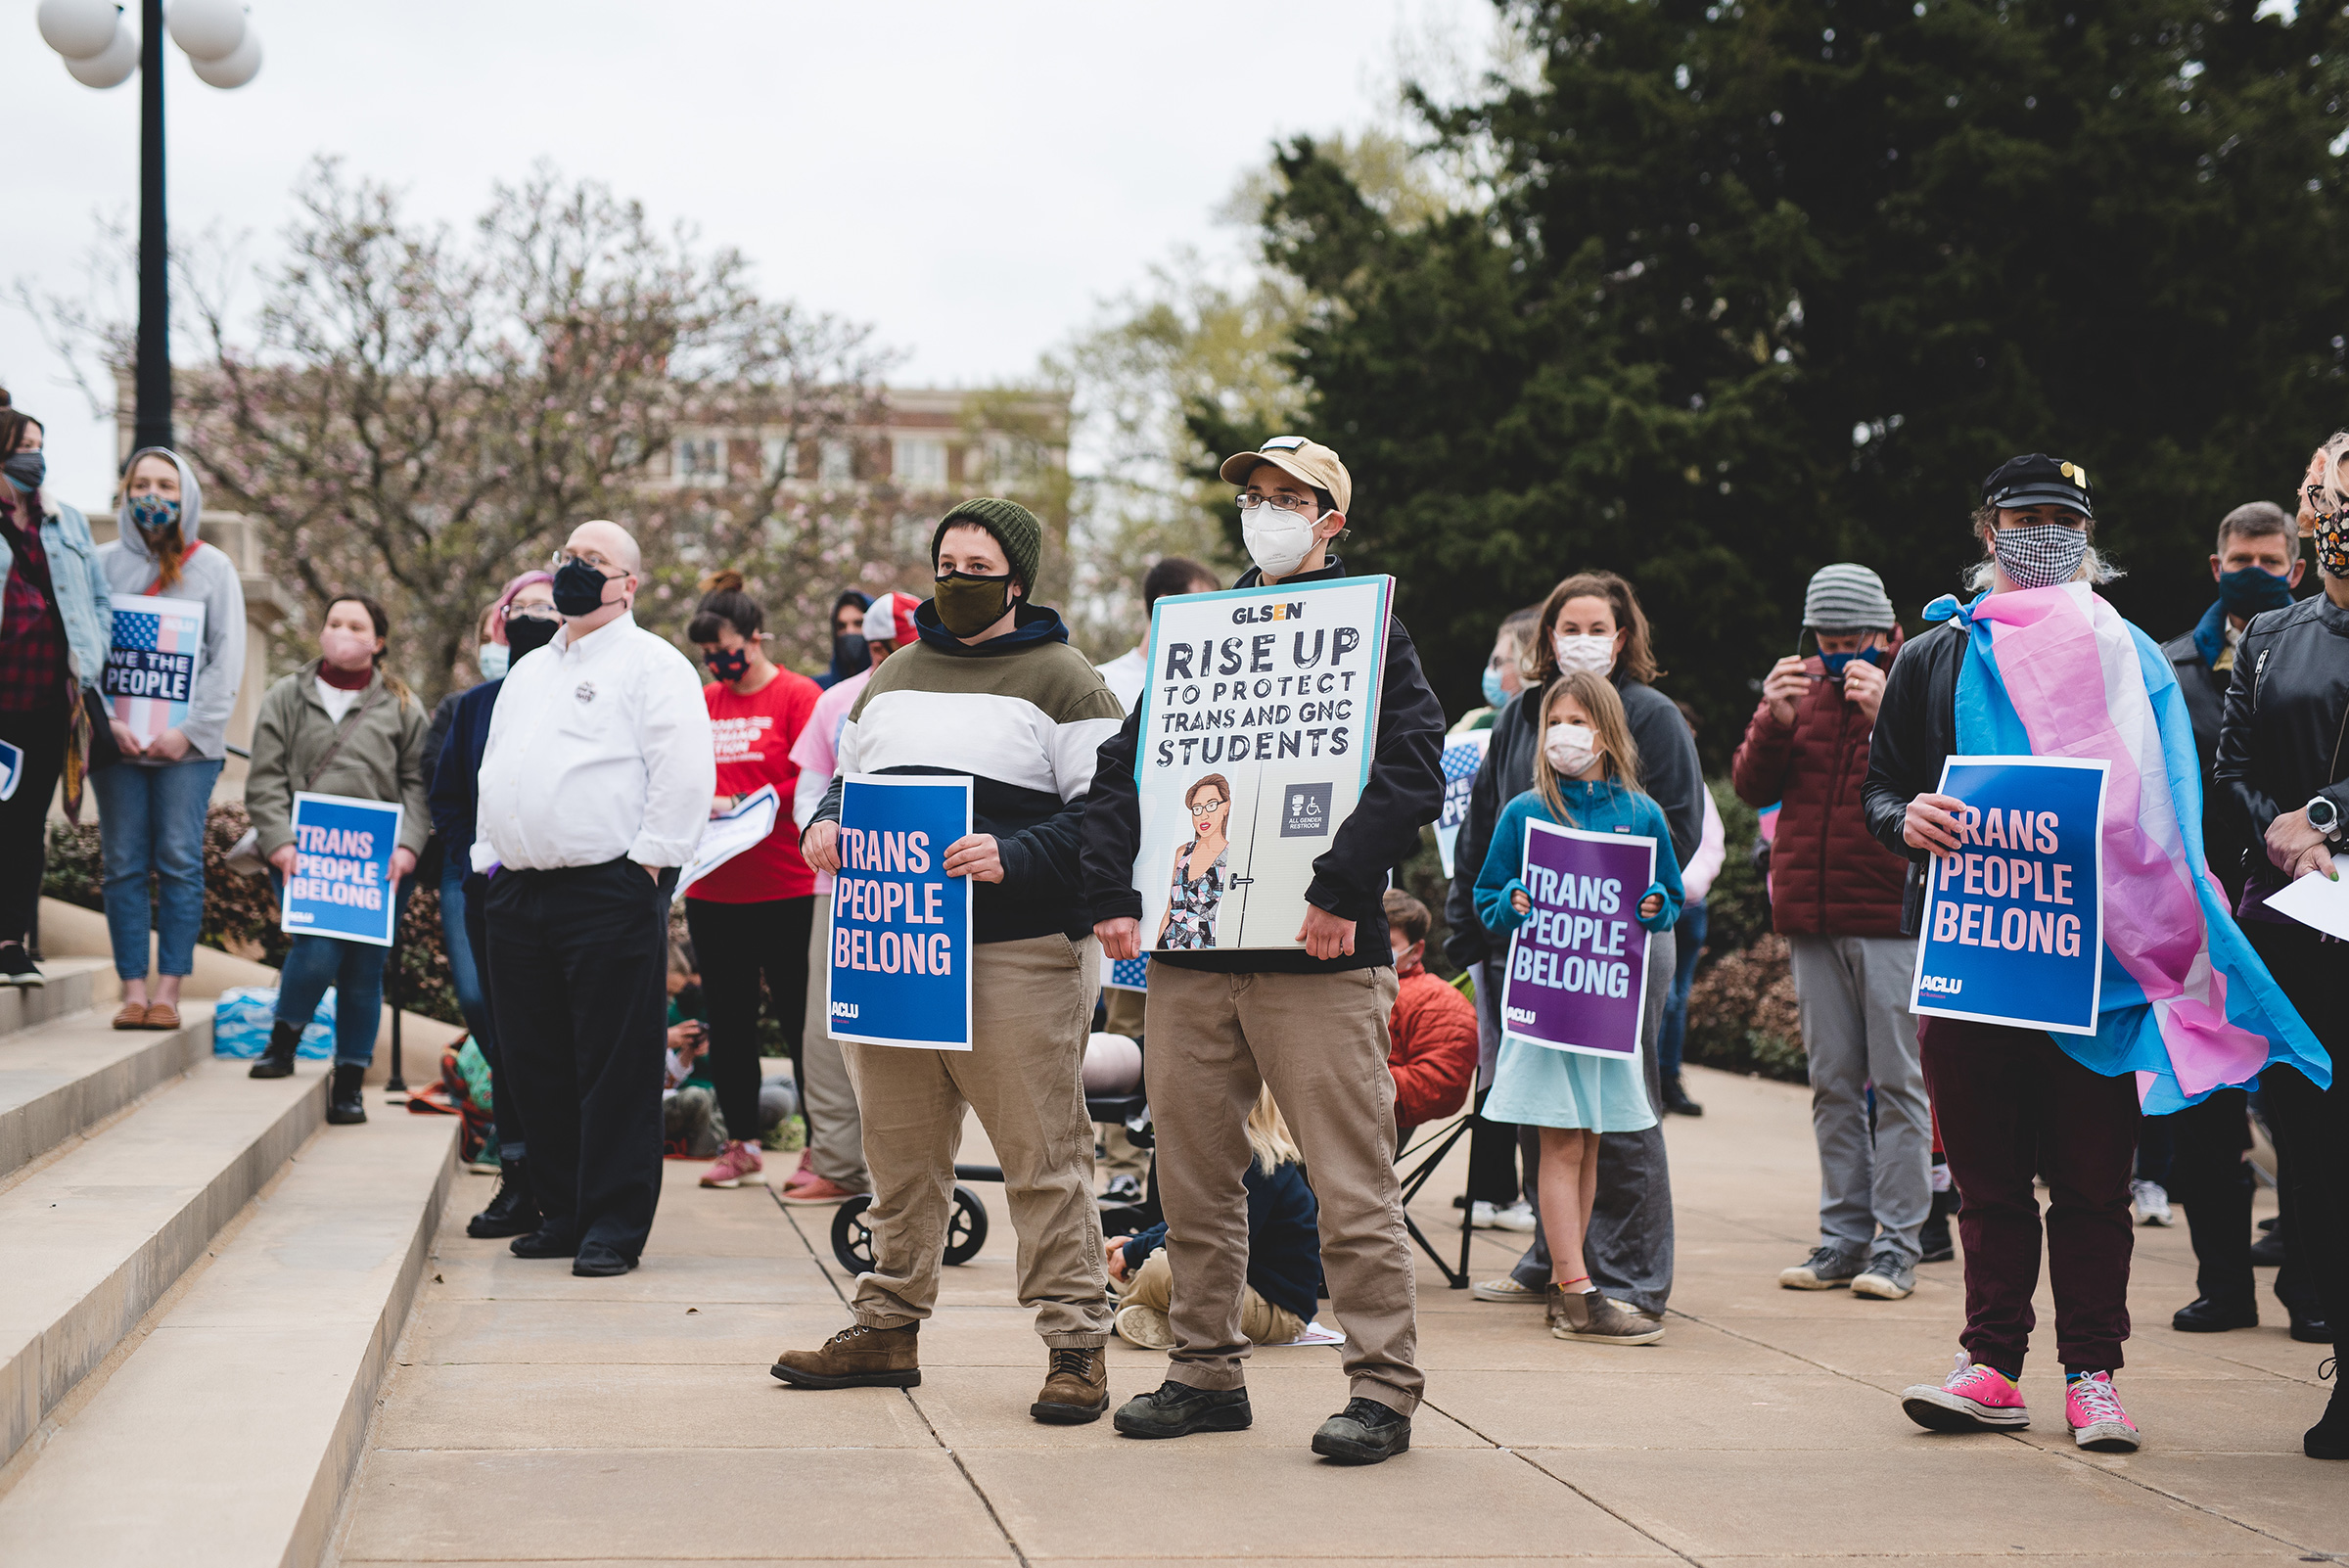 Transgender rights advocates rally outside the Arkansas state Capitol on March 18, 2021.